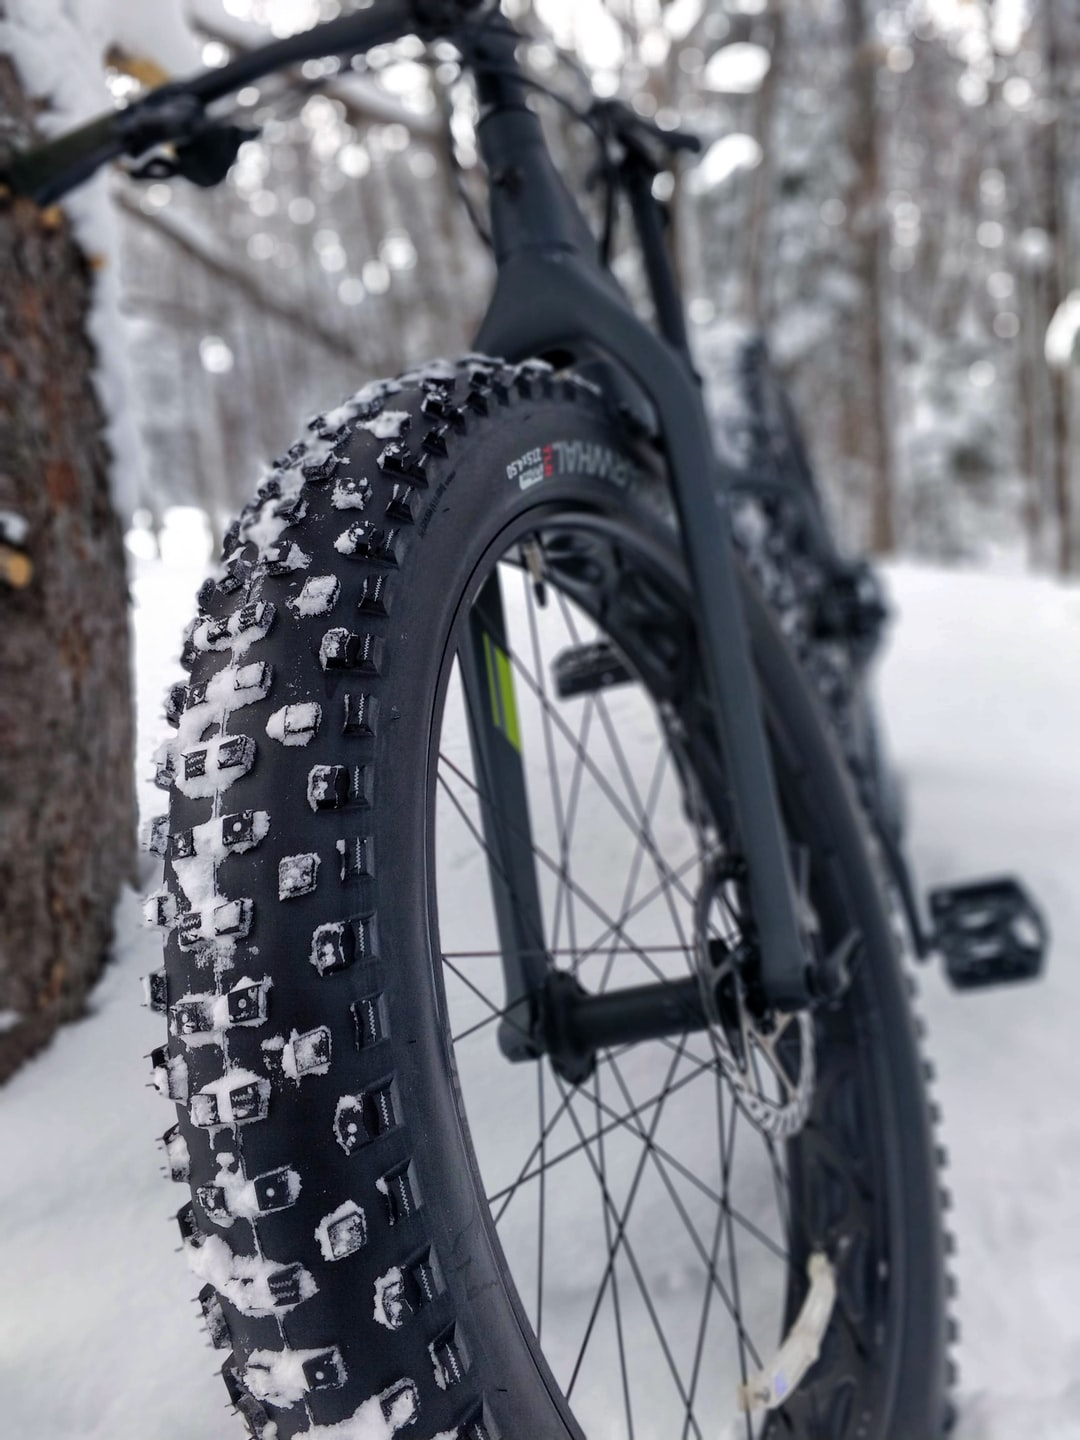 2019 Trek Farley 5 riding the Swedetown trails in the cold & snowy Upper Peninsula of Michigan.